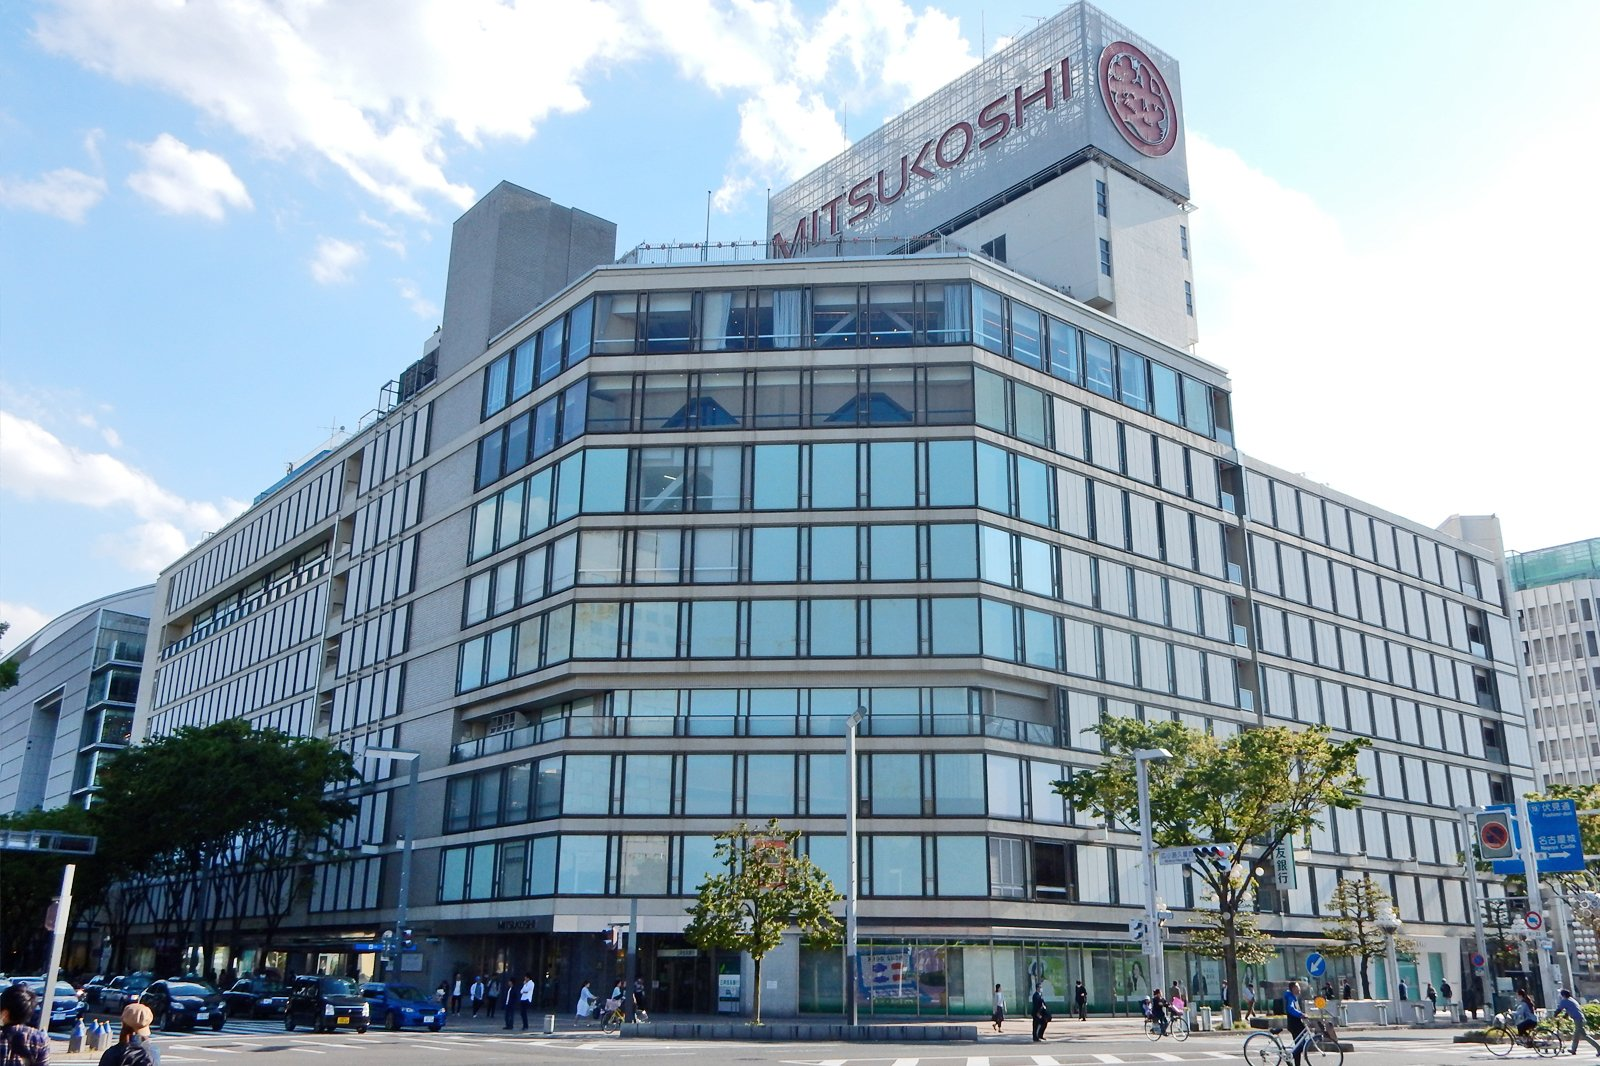 10 Best Shopping Experiences in Nagoya - Where to Shop in Nagoya